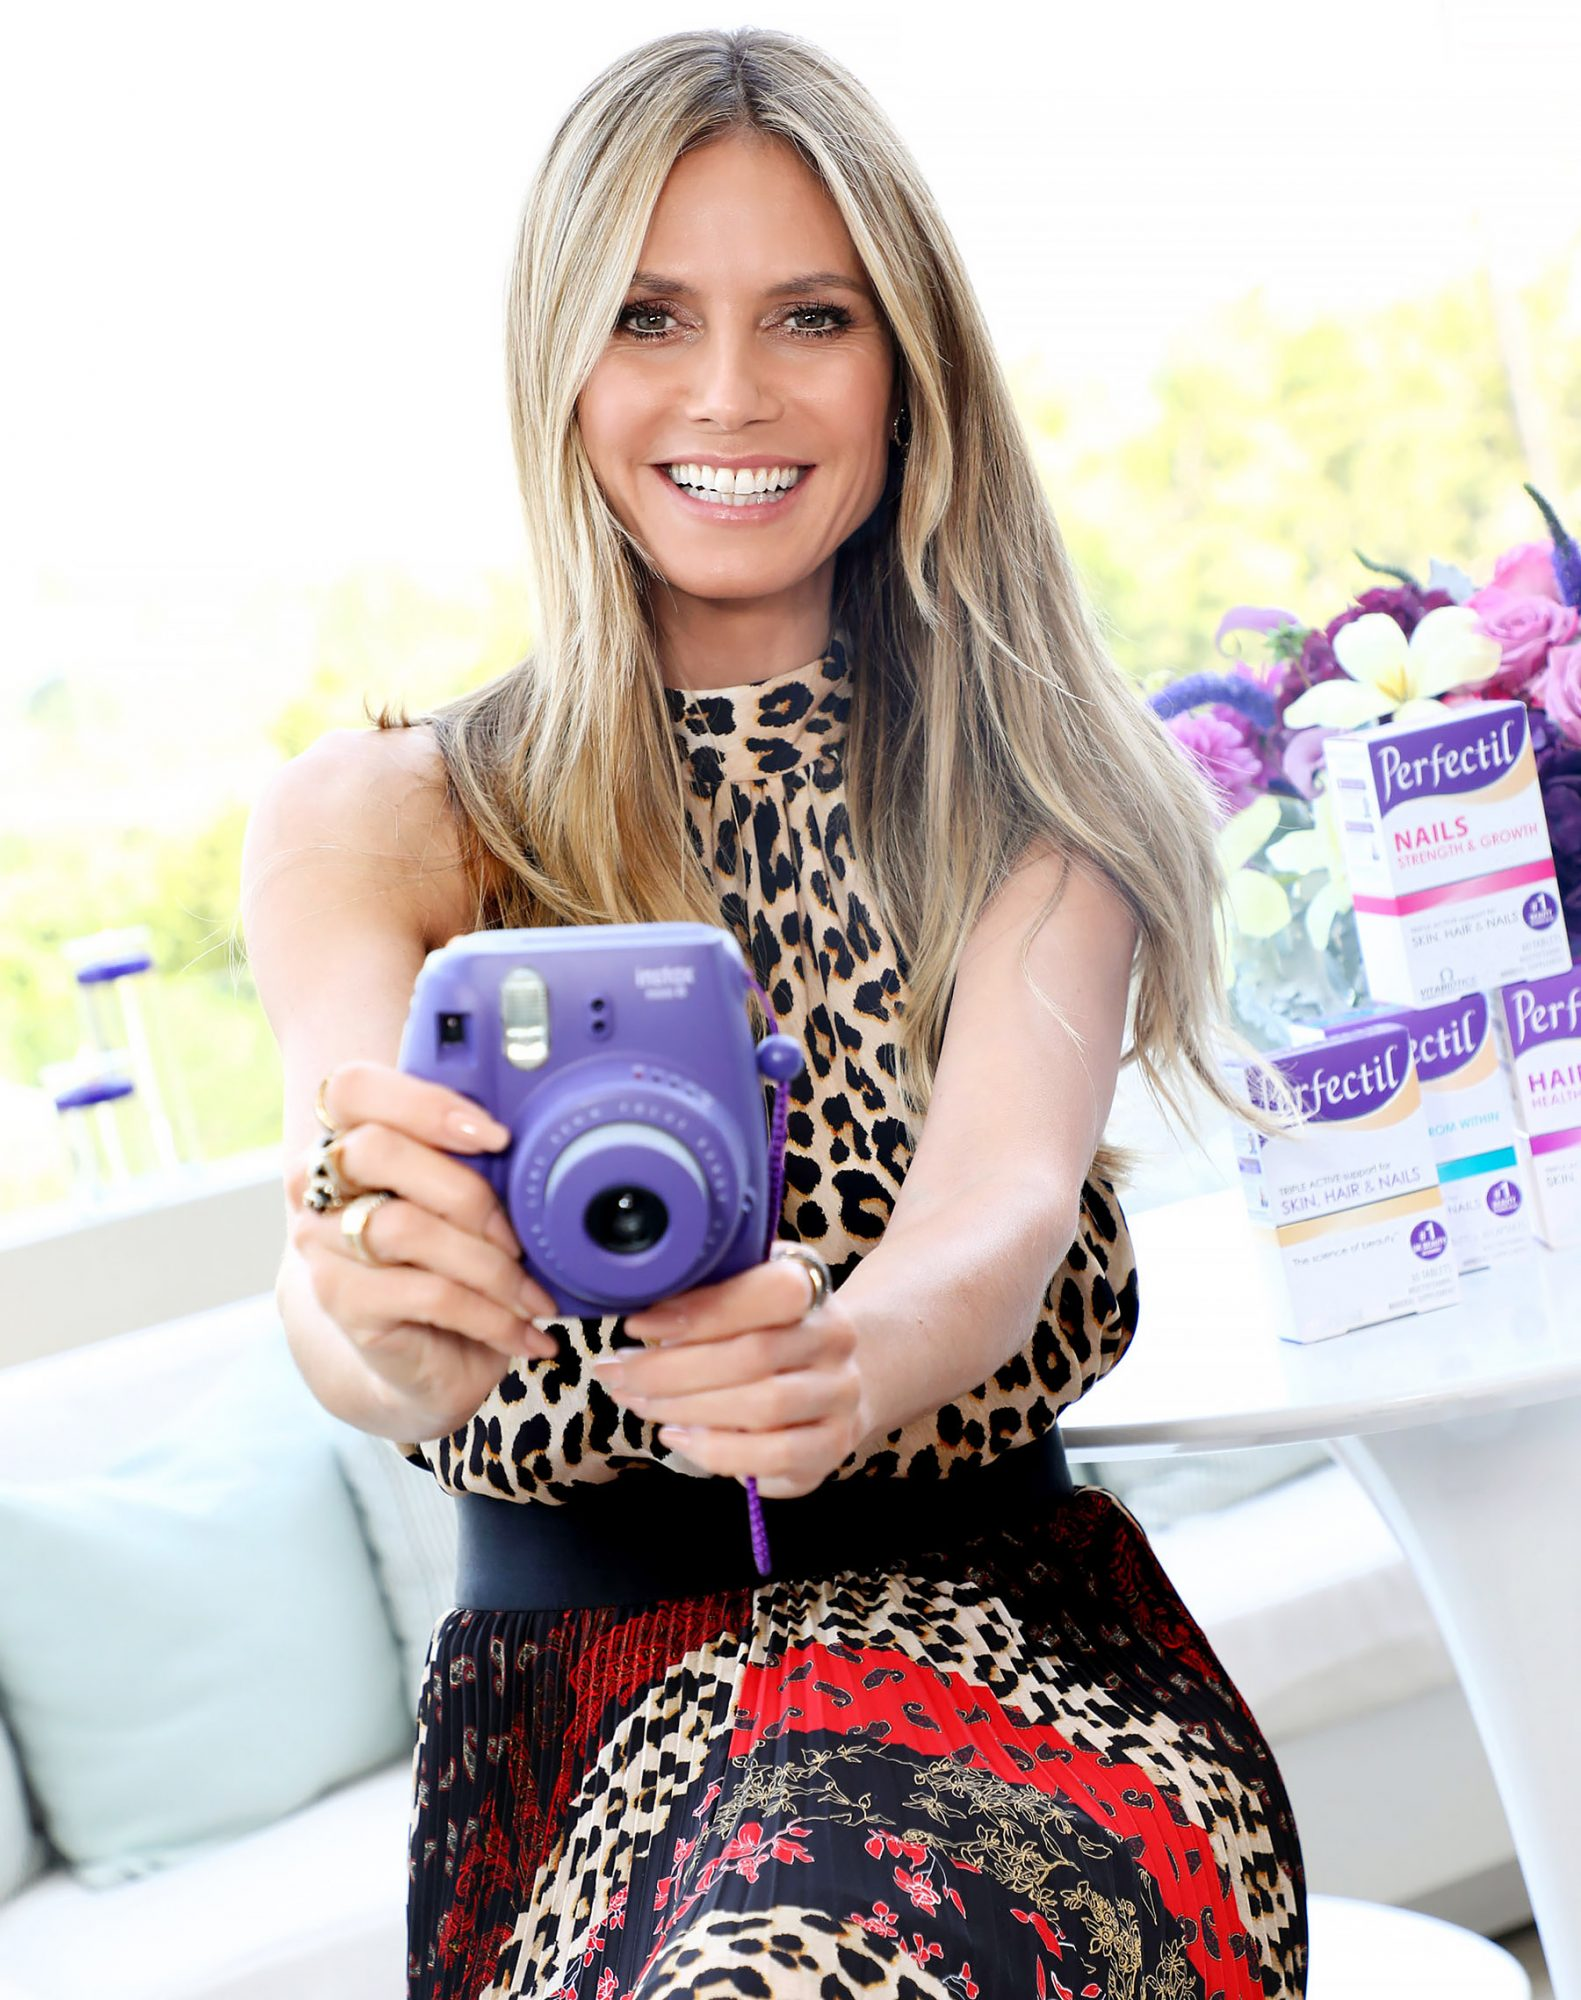 Perfectil's US Ambassador Heidi Klum Hosts Launch Event